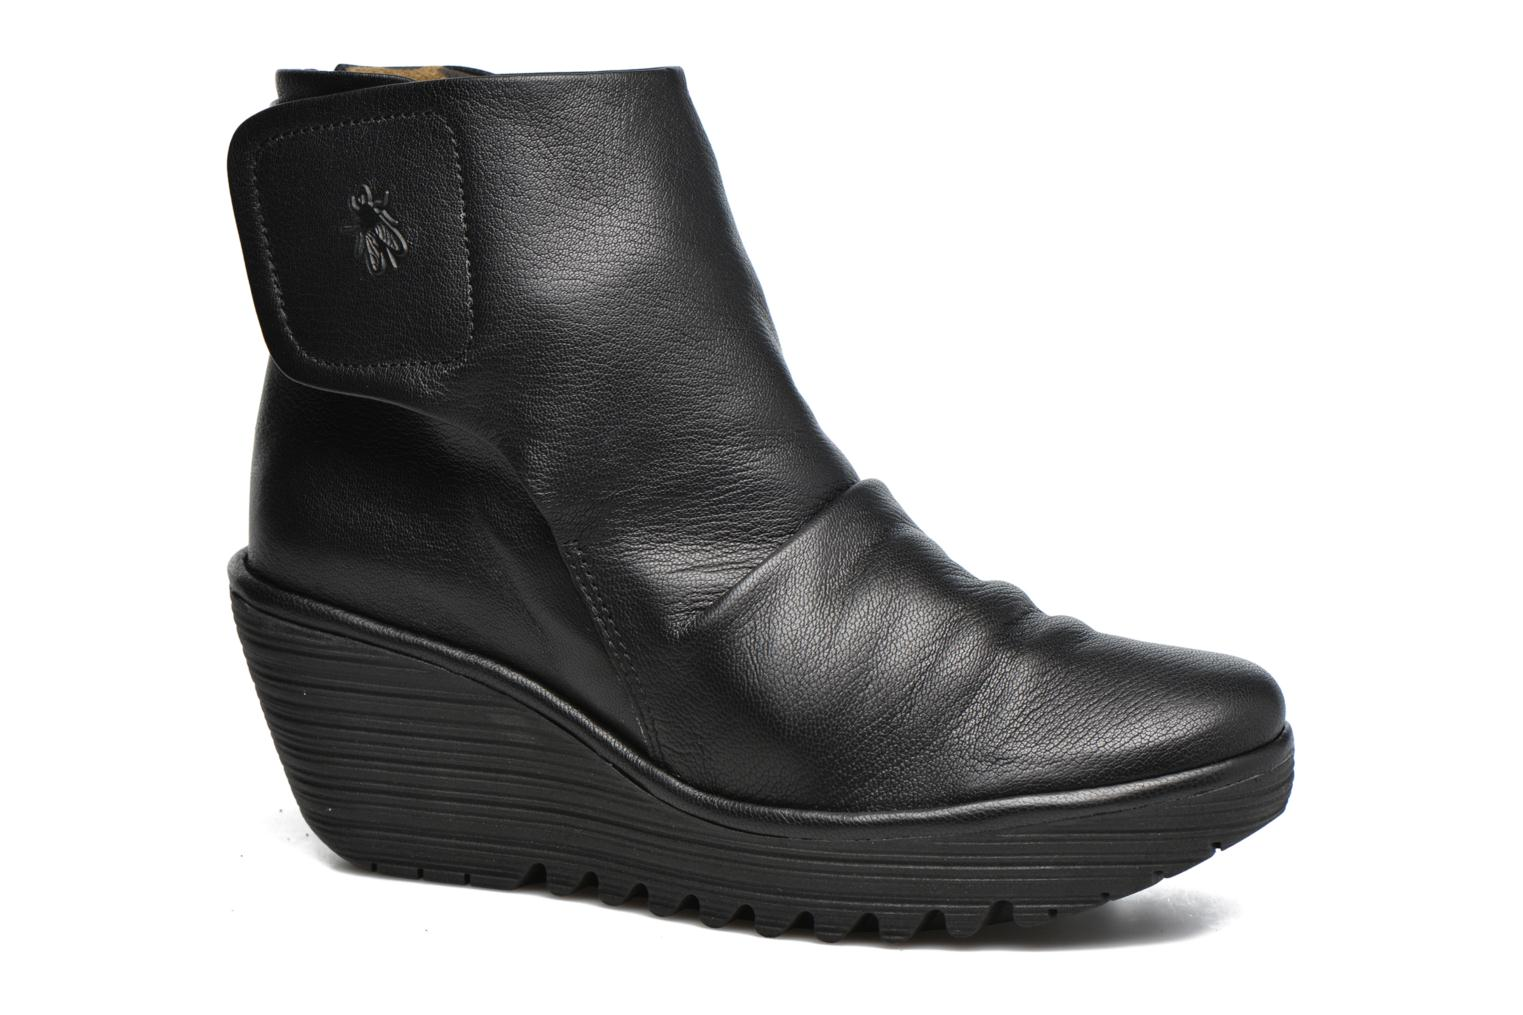 Marques Chaussure femme Fly London femme Yip Mousse Black